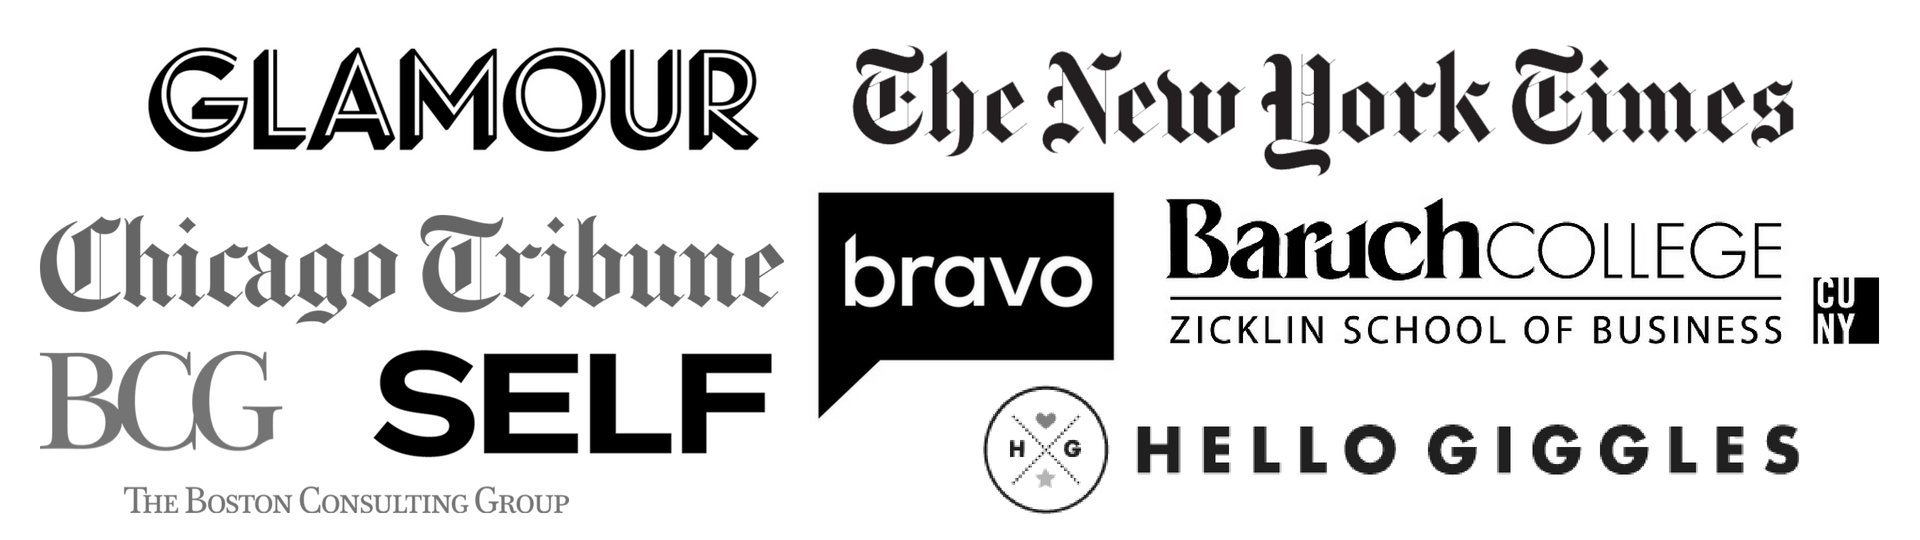 Devon Smiley Featured Negotiation Expert New York Times Glamour Chicago Tribune Self.png